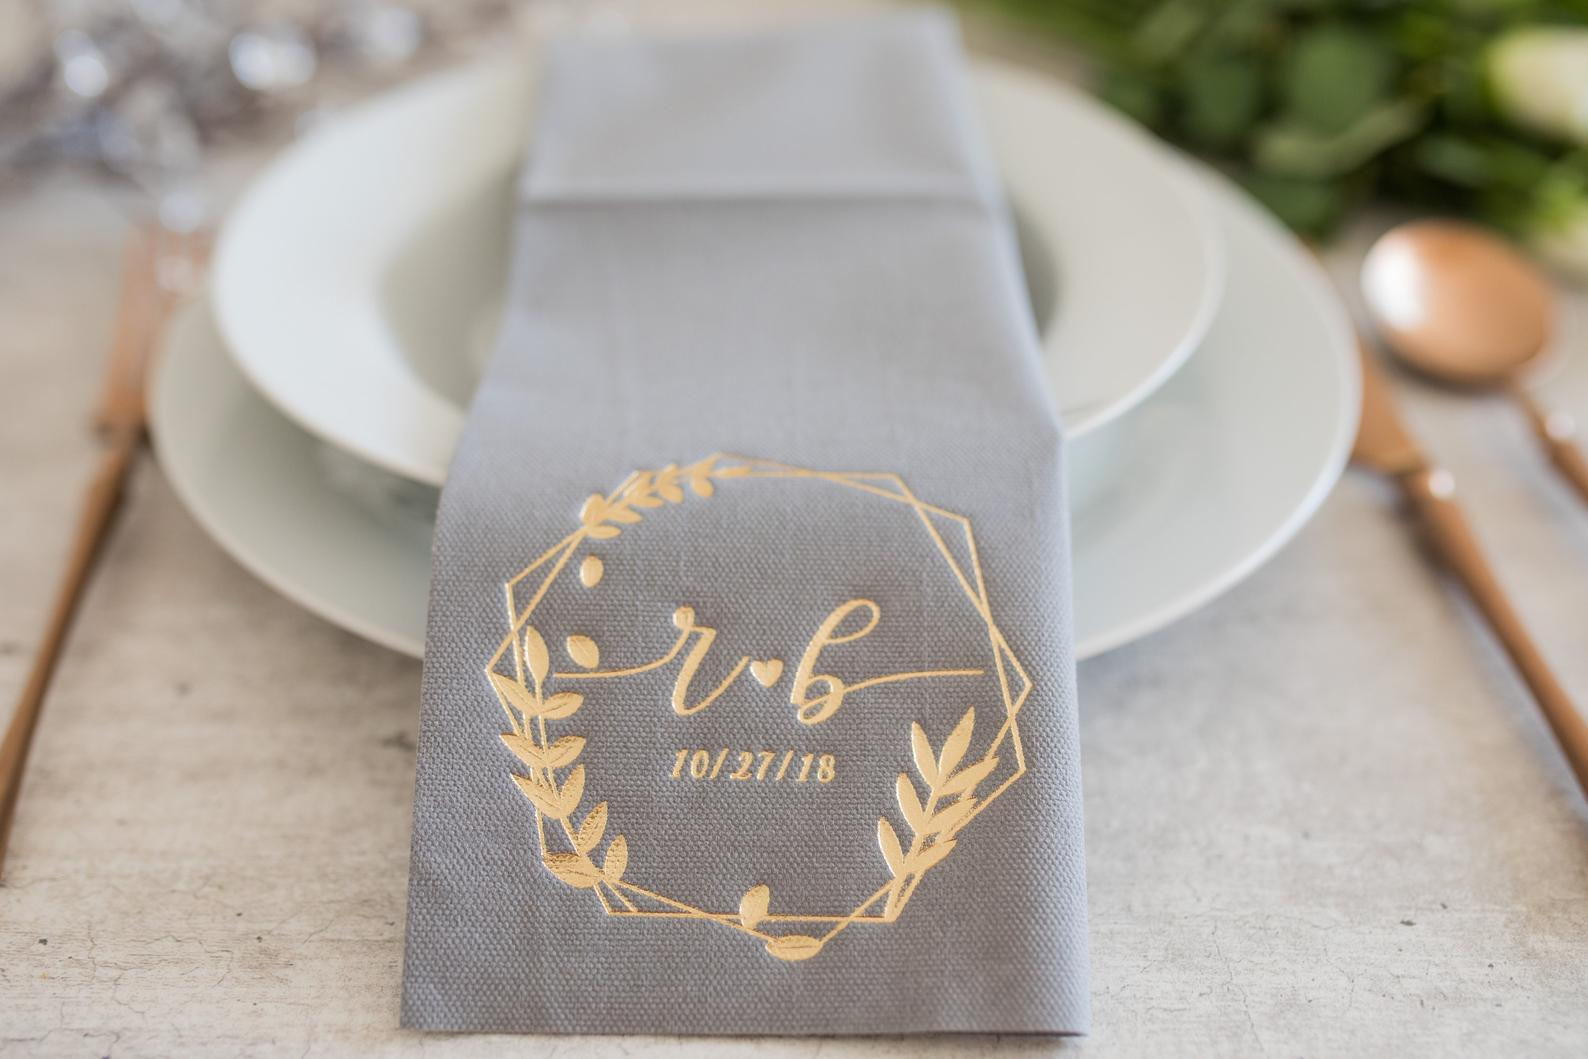 Personalized Wedding Napkins By Decor Press